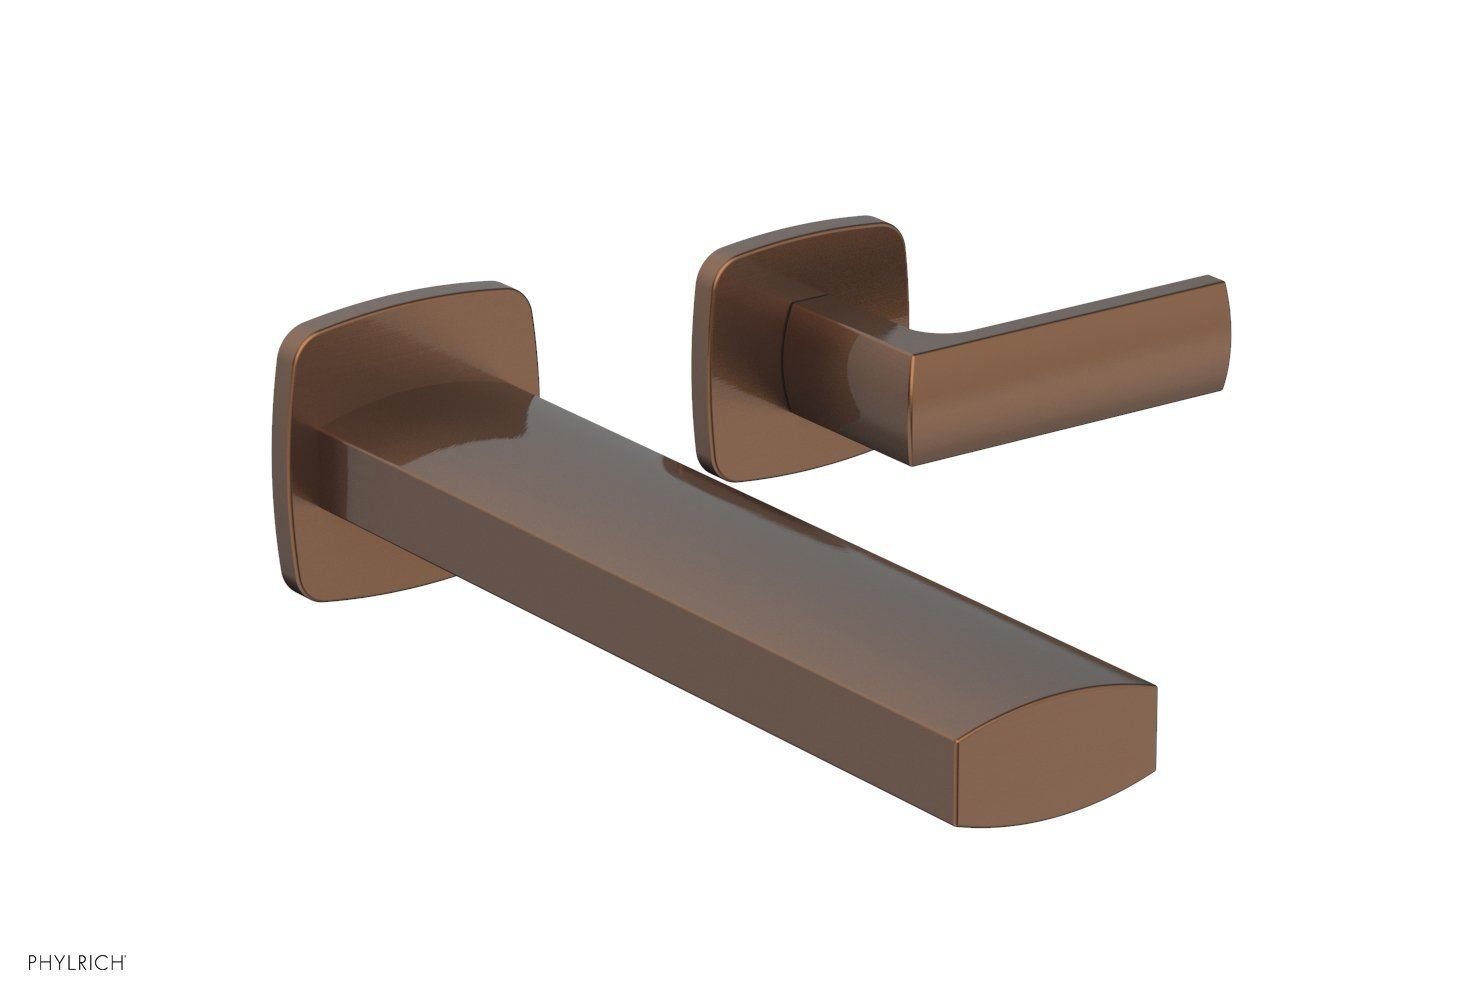 Phylrich 181-16-05A RADI Single Handle Wall Lavatory Set - Lever Handles - Antique Copper